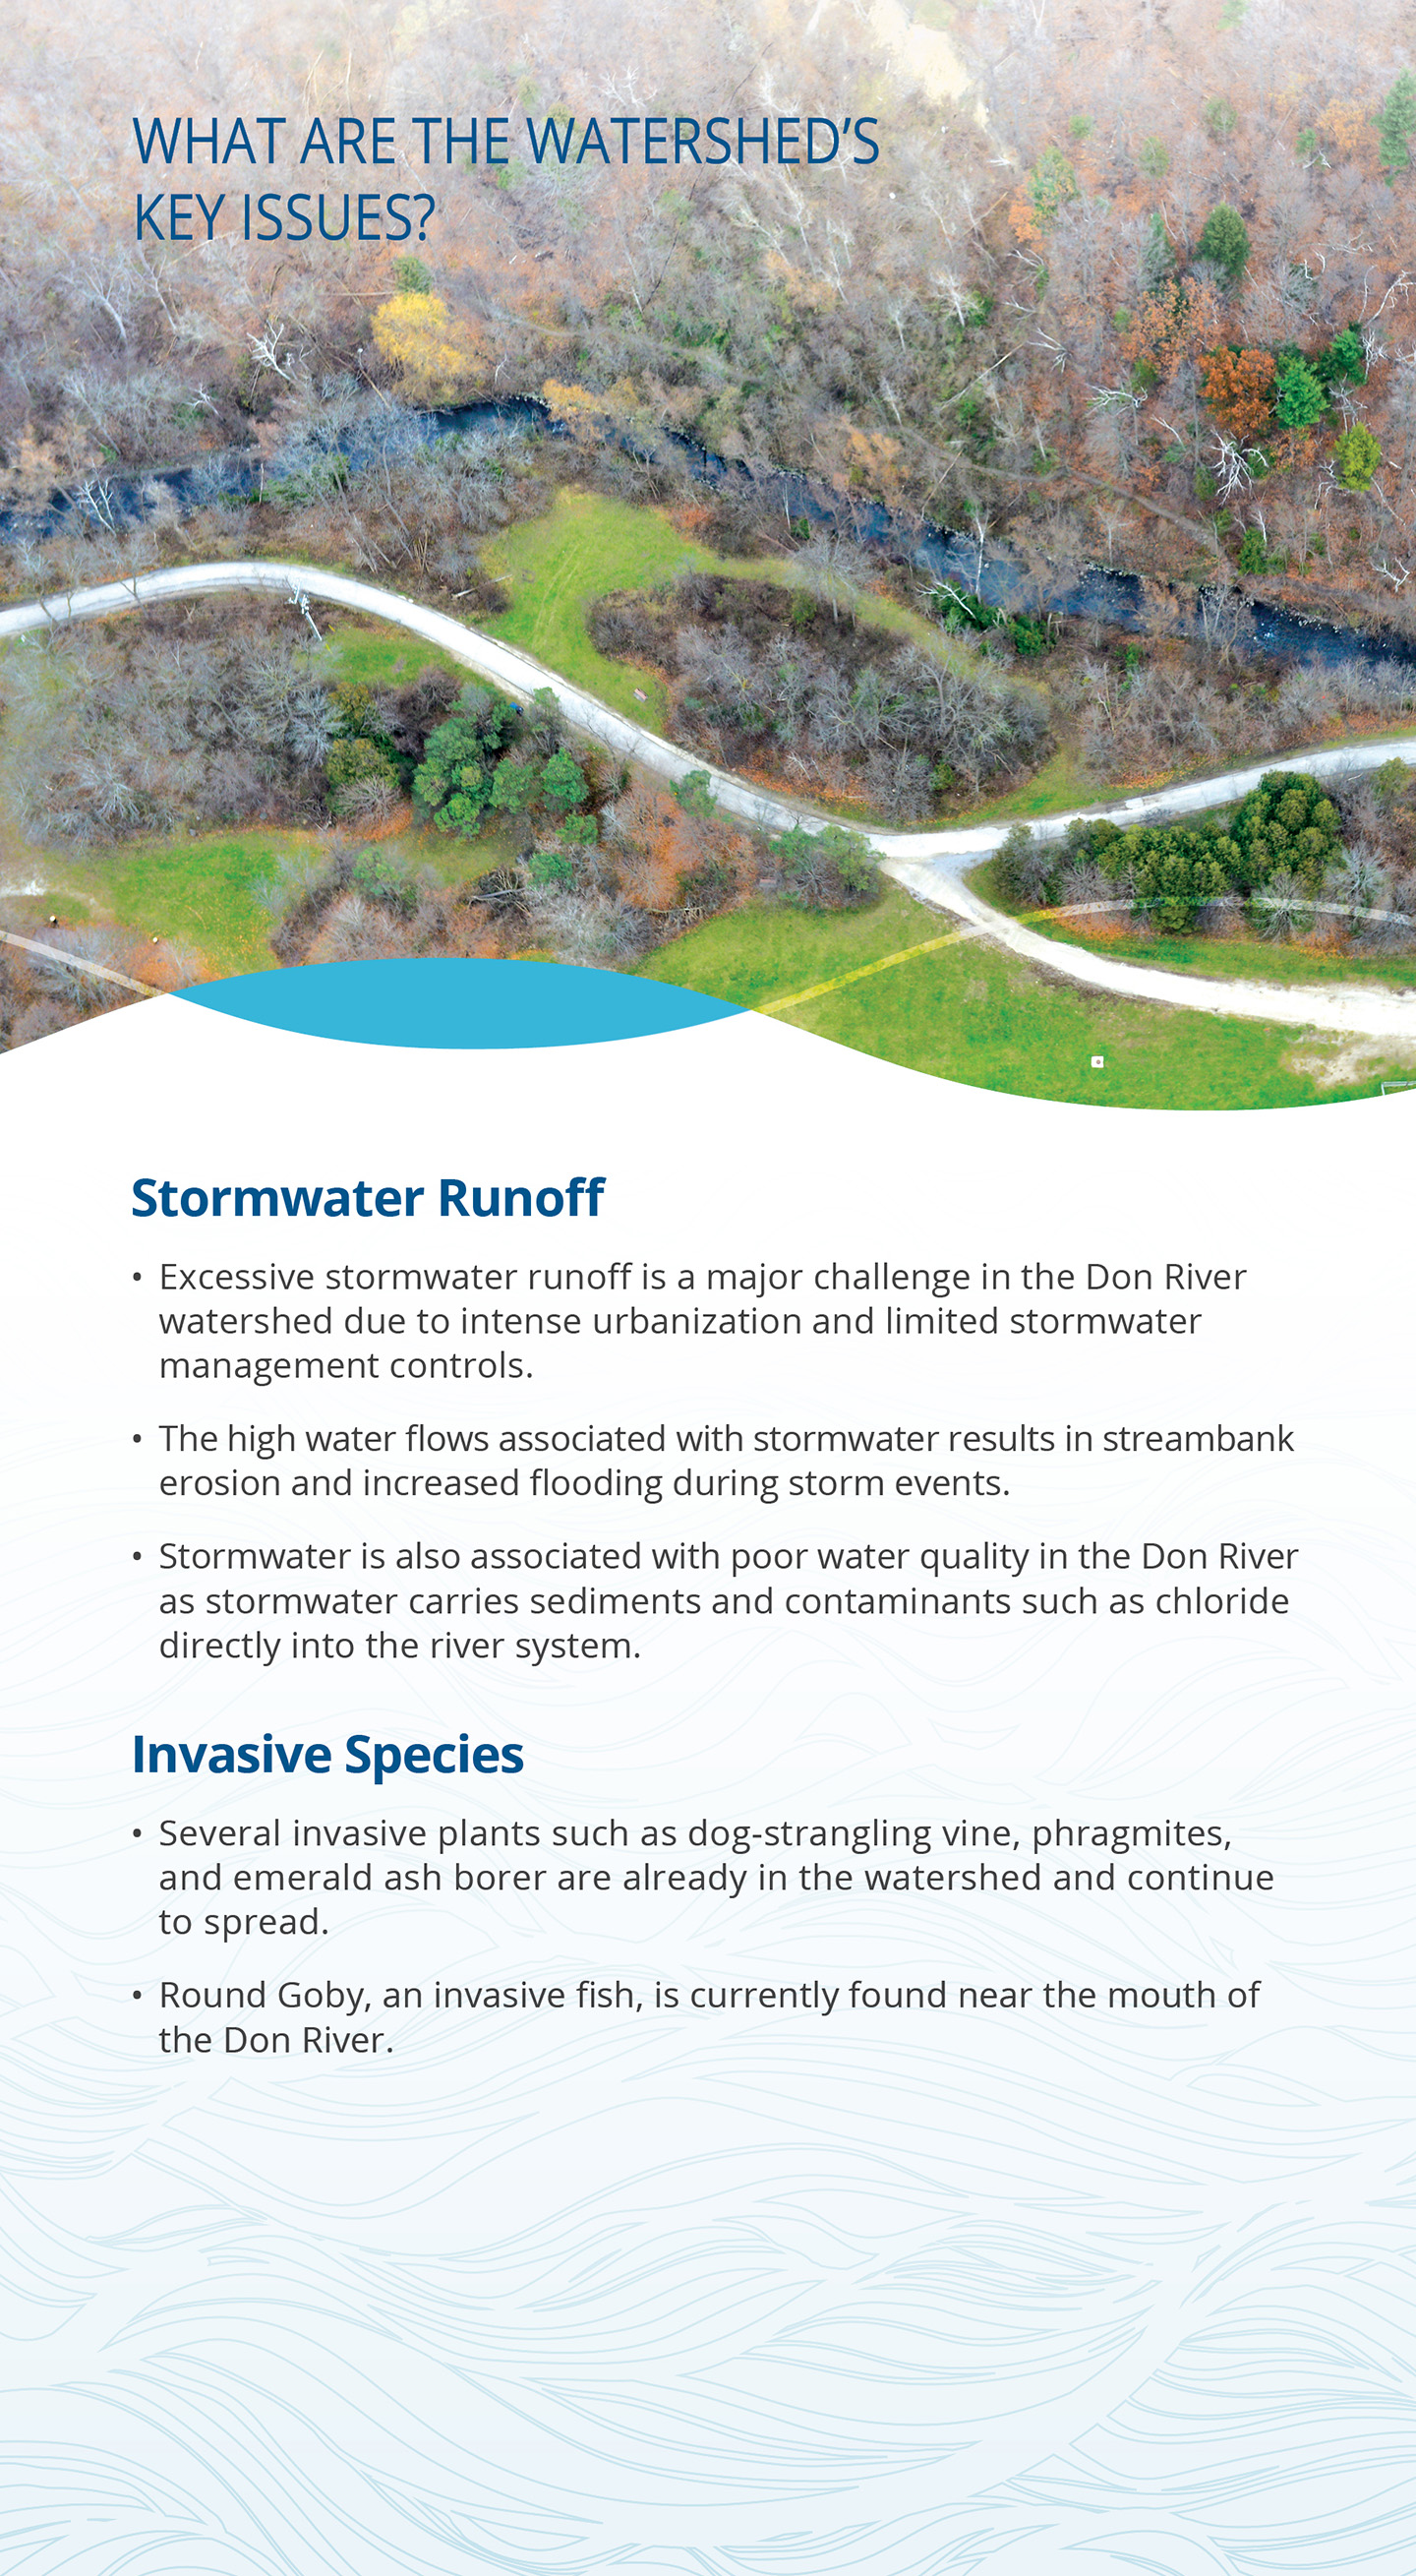 key issues panel of Don River watershed report card